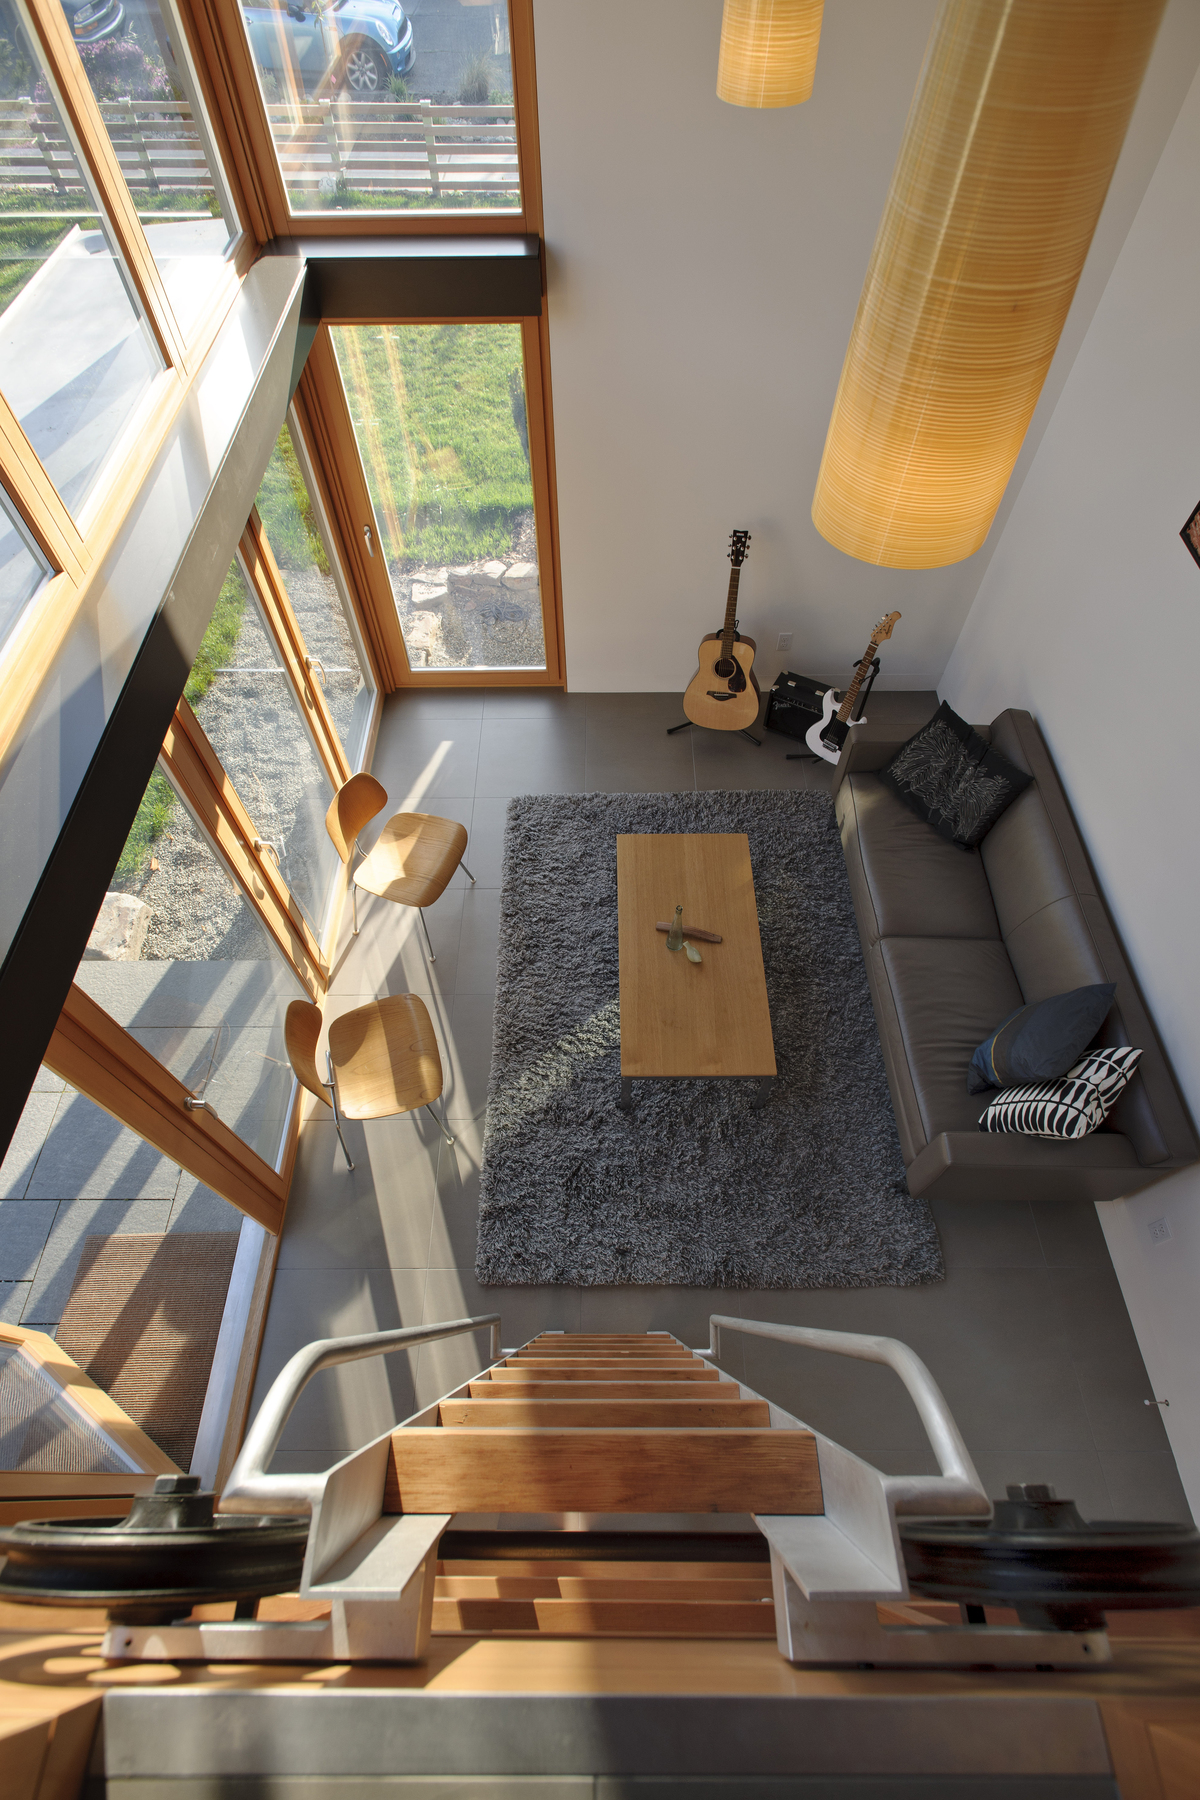 From the loft area